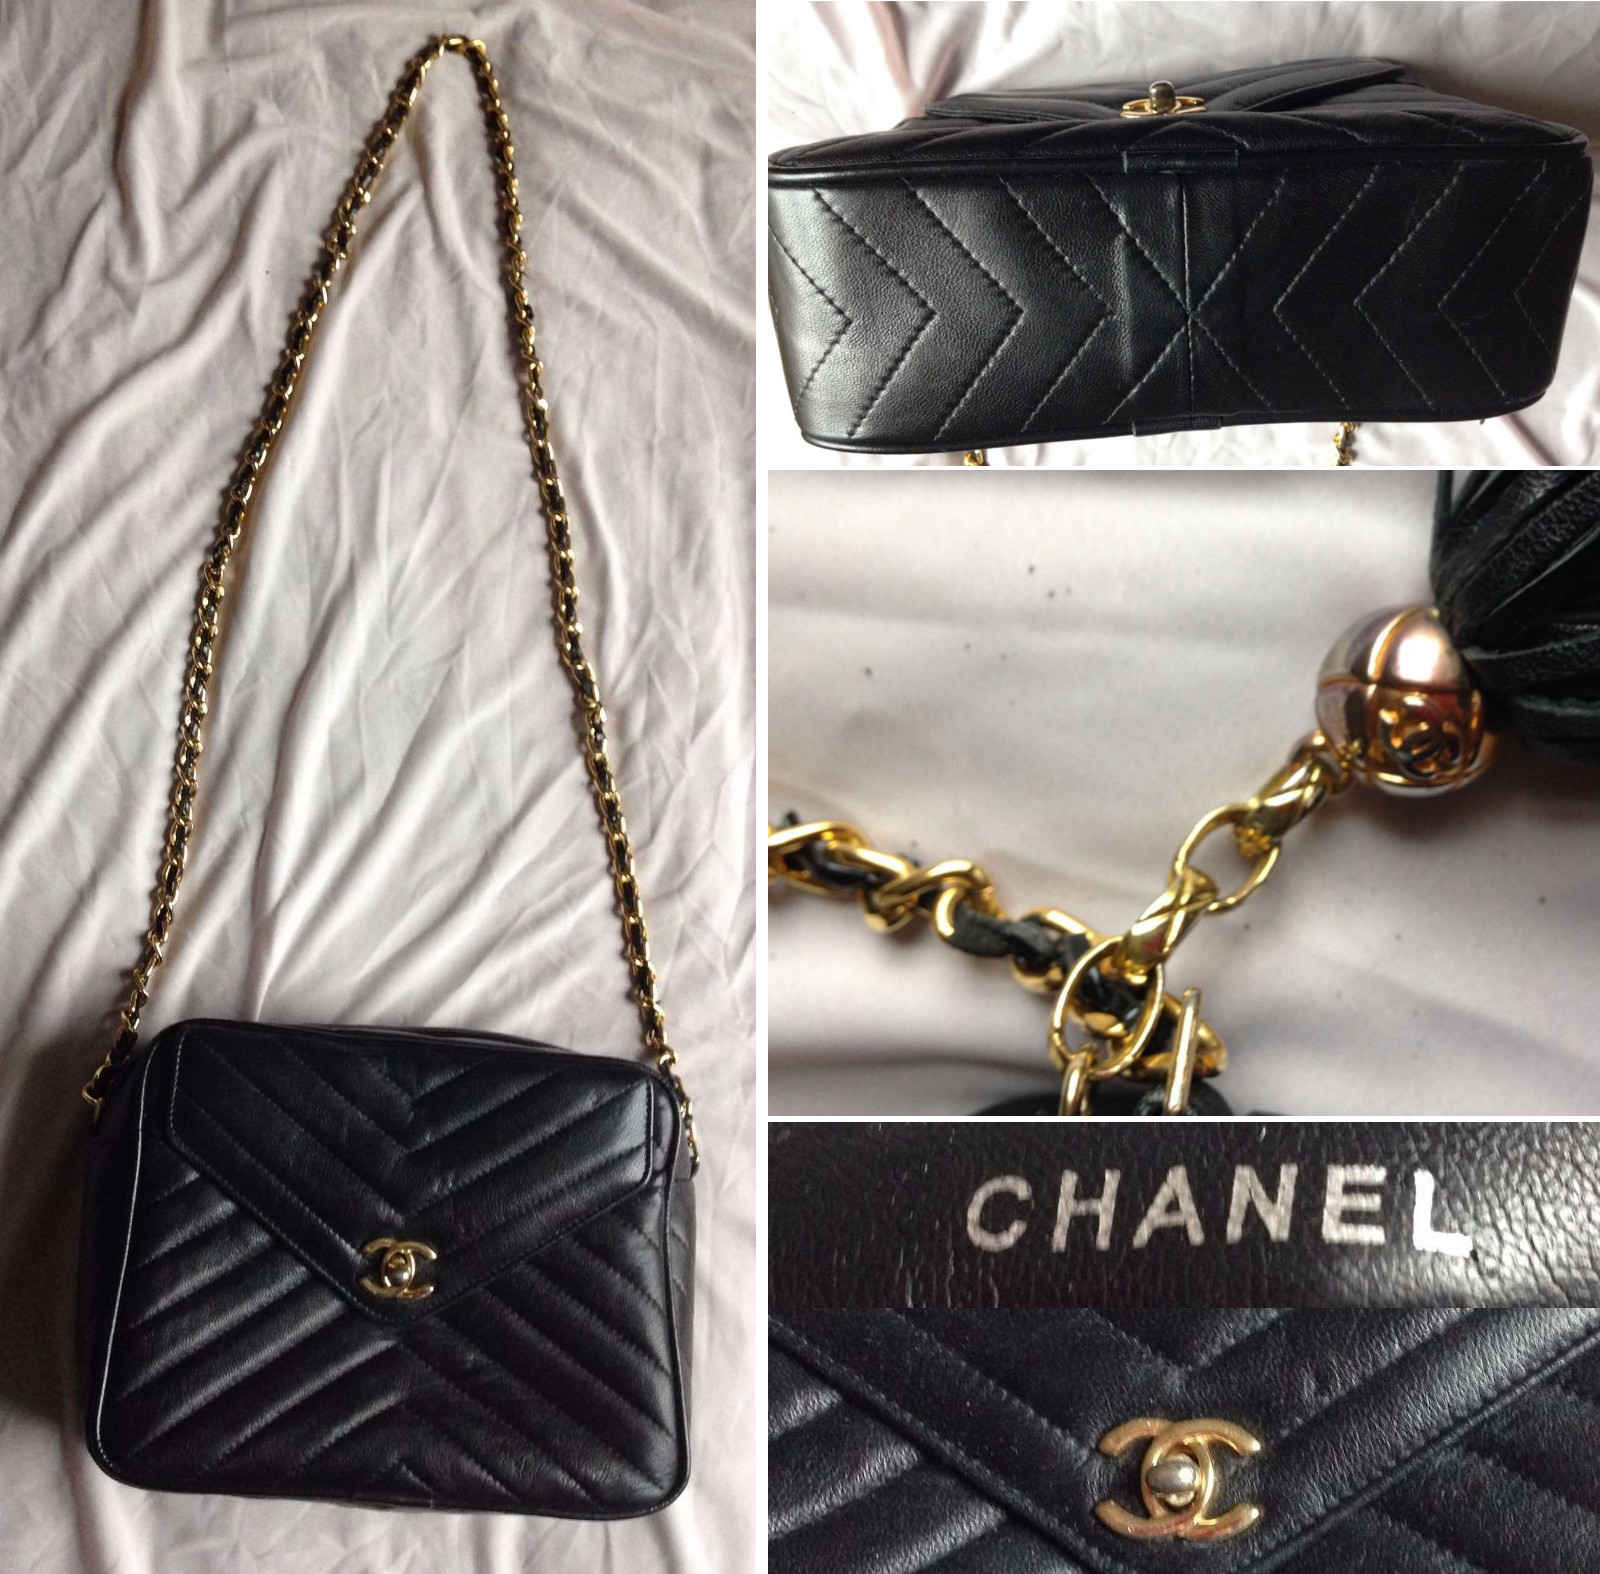 de99dc7ae851 Vintage Chanel Handbag Authentication